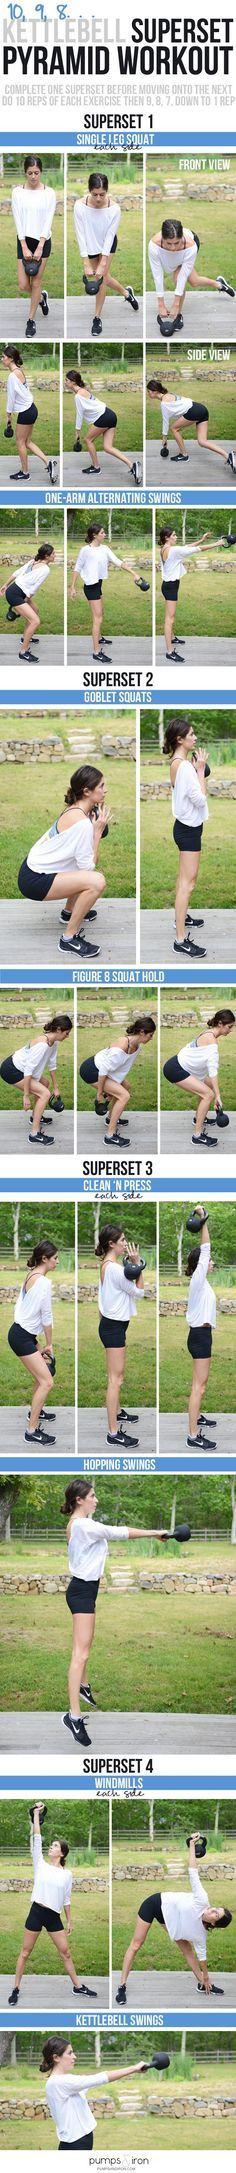 Kettlebell Superset Pyramid Workout | Posted By: NewHowtoLoseBellyFat.com